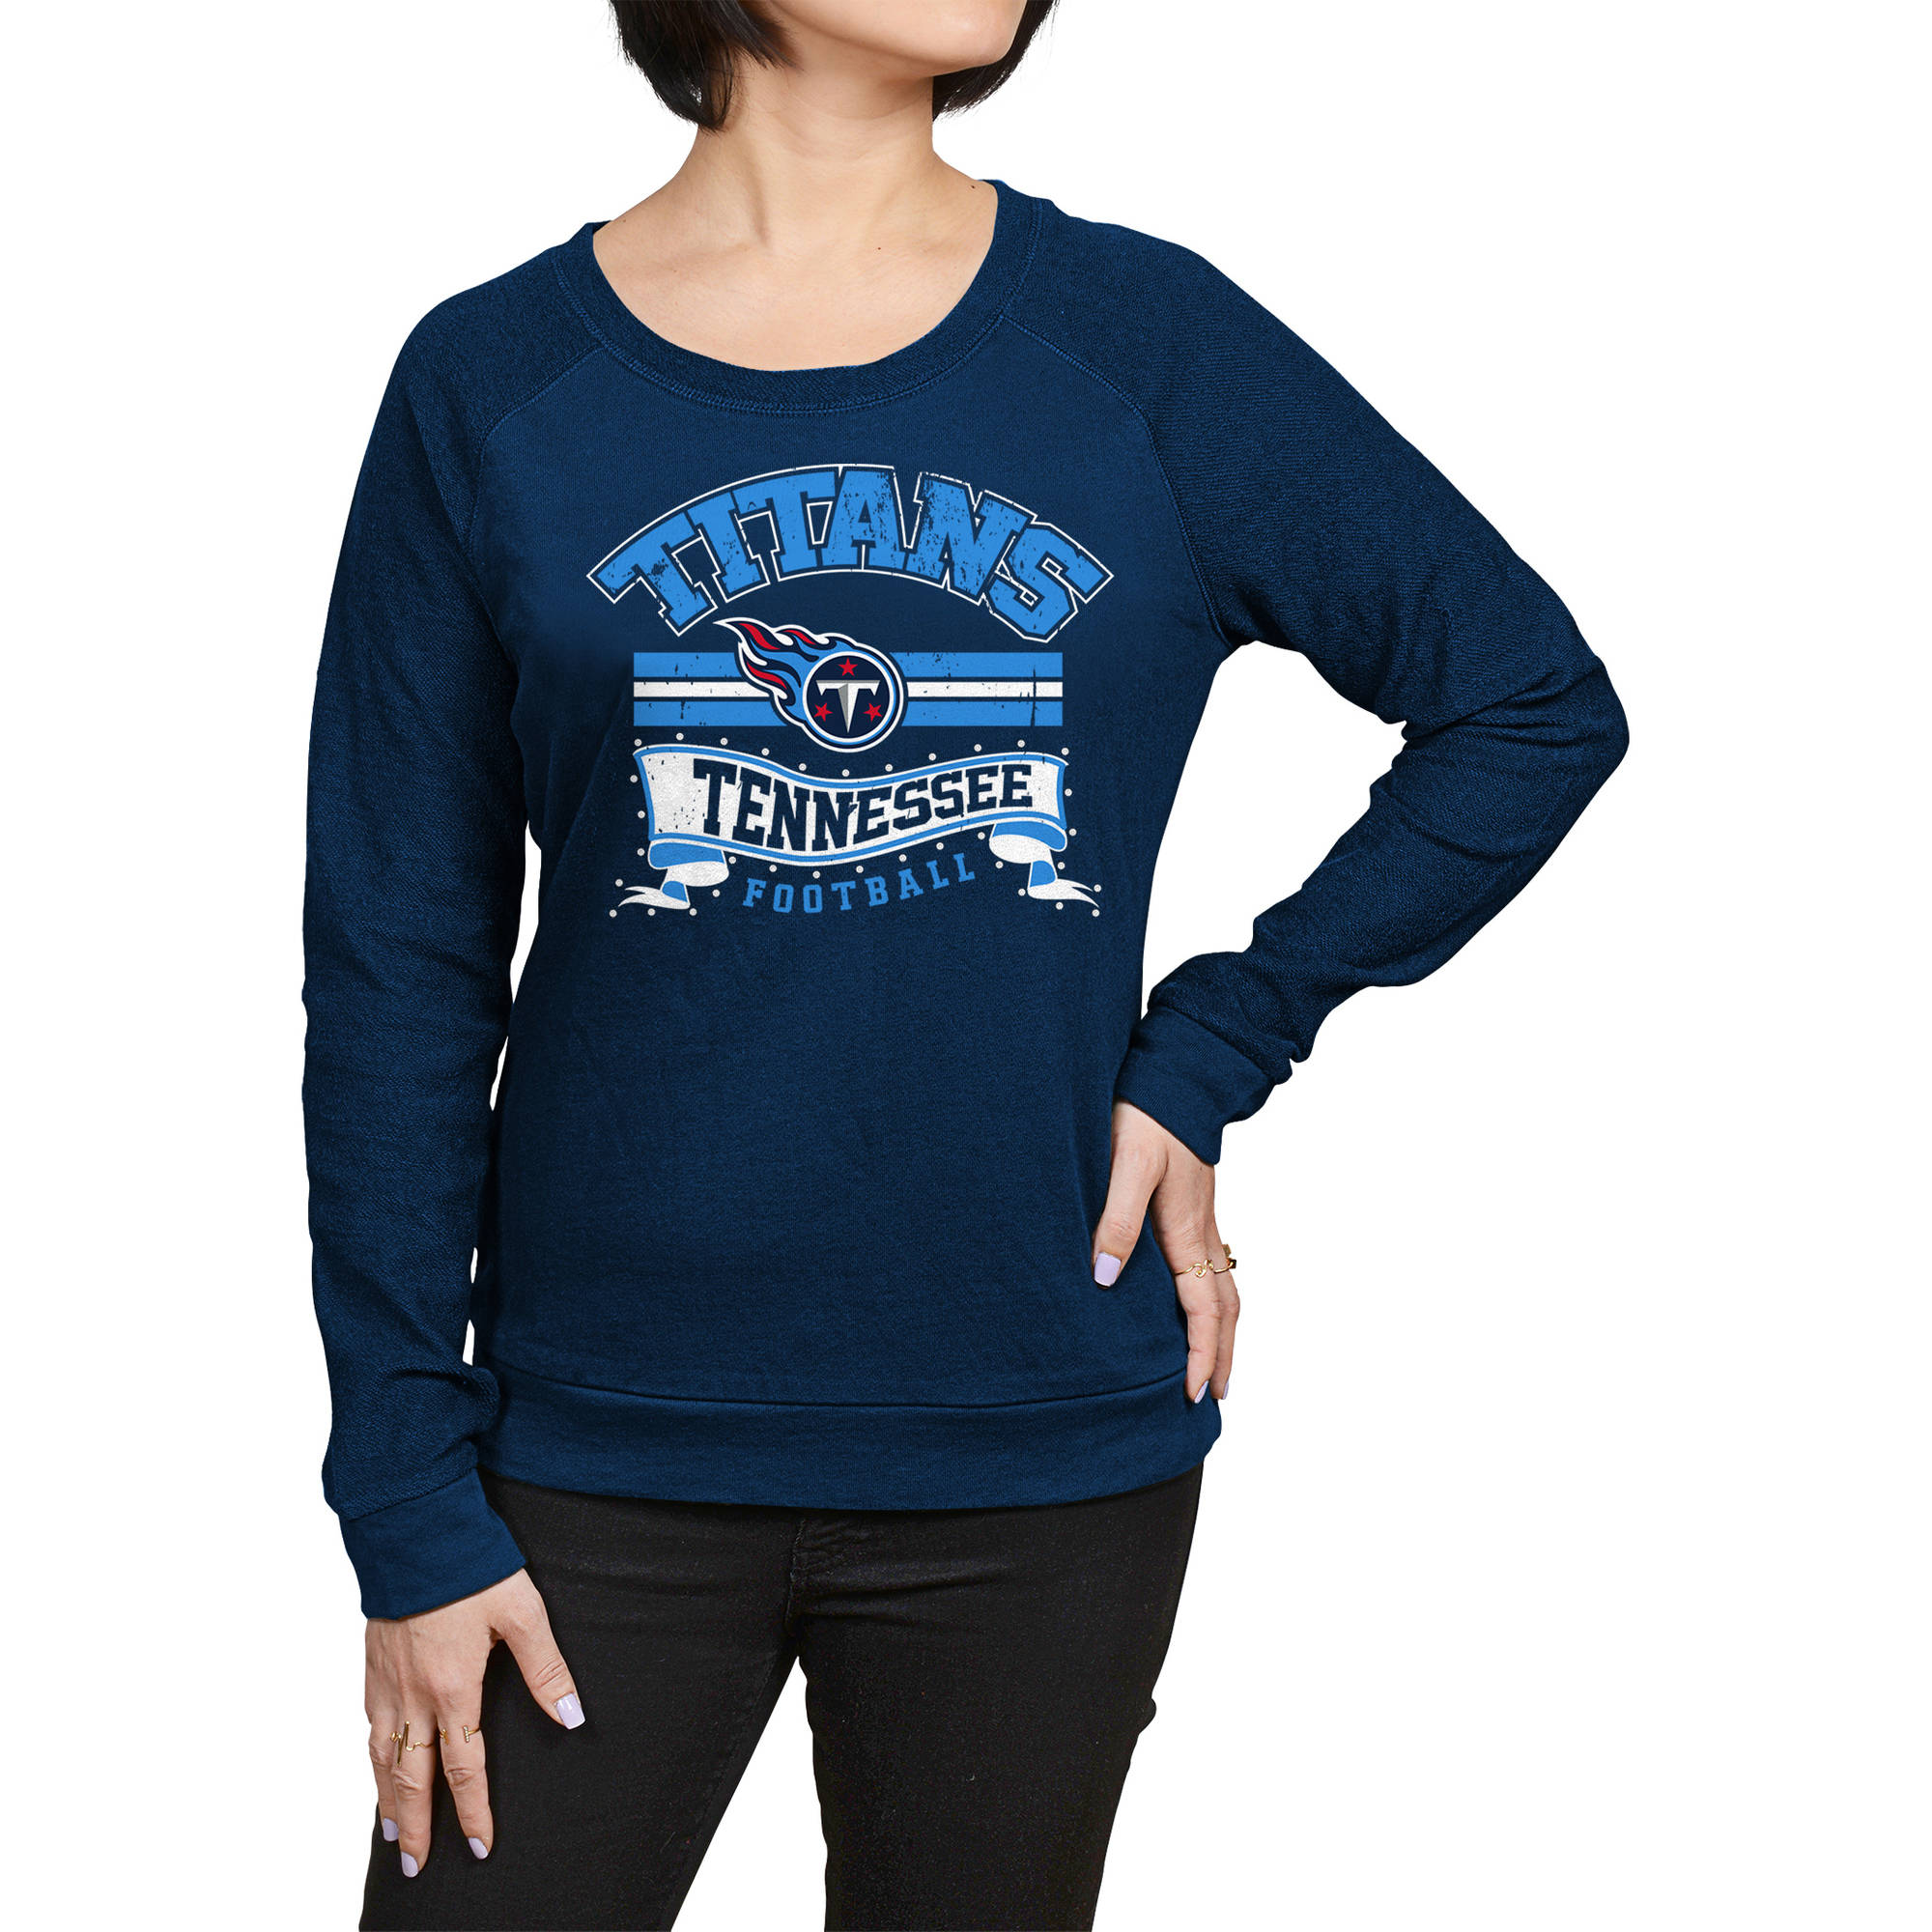 NFL Tennessee Titans Juniors Fleece Top